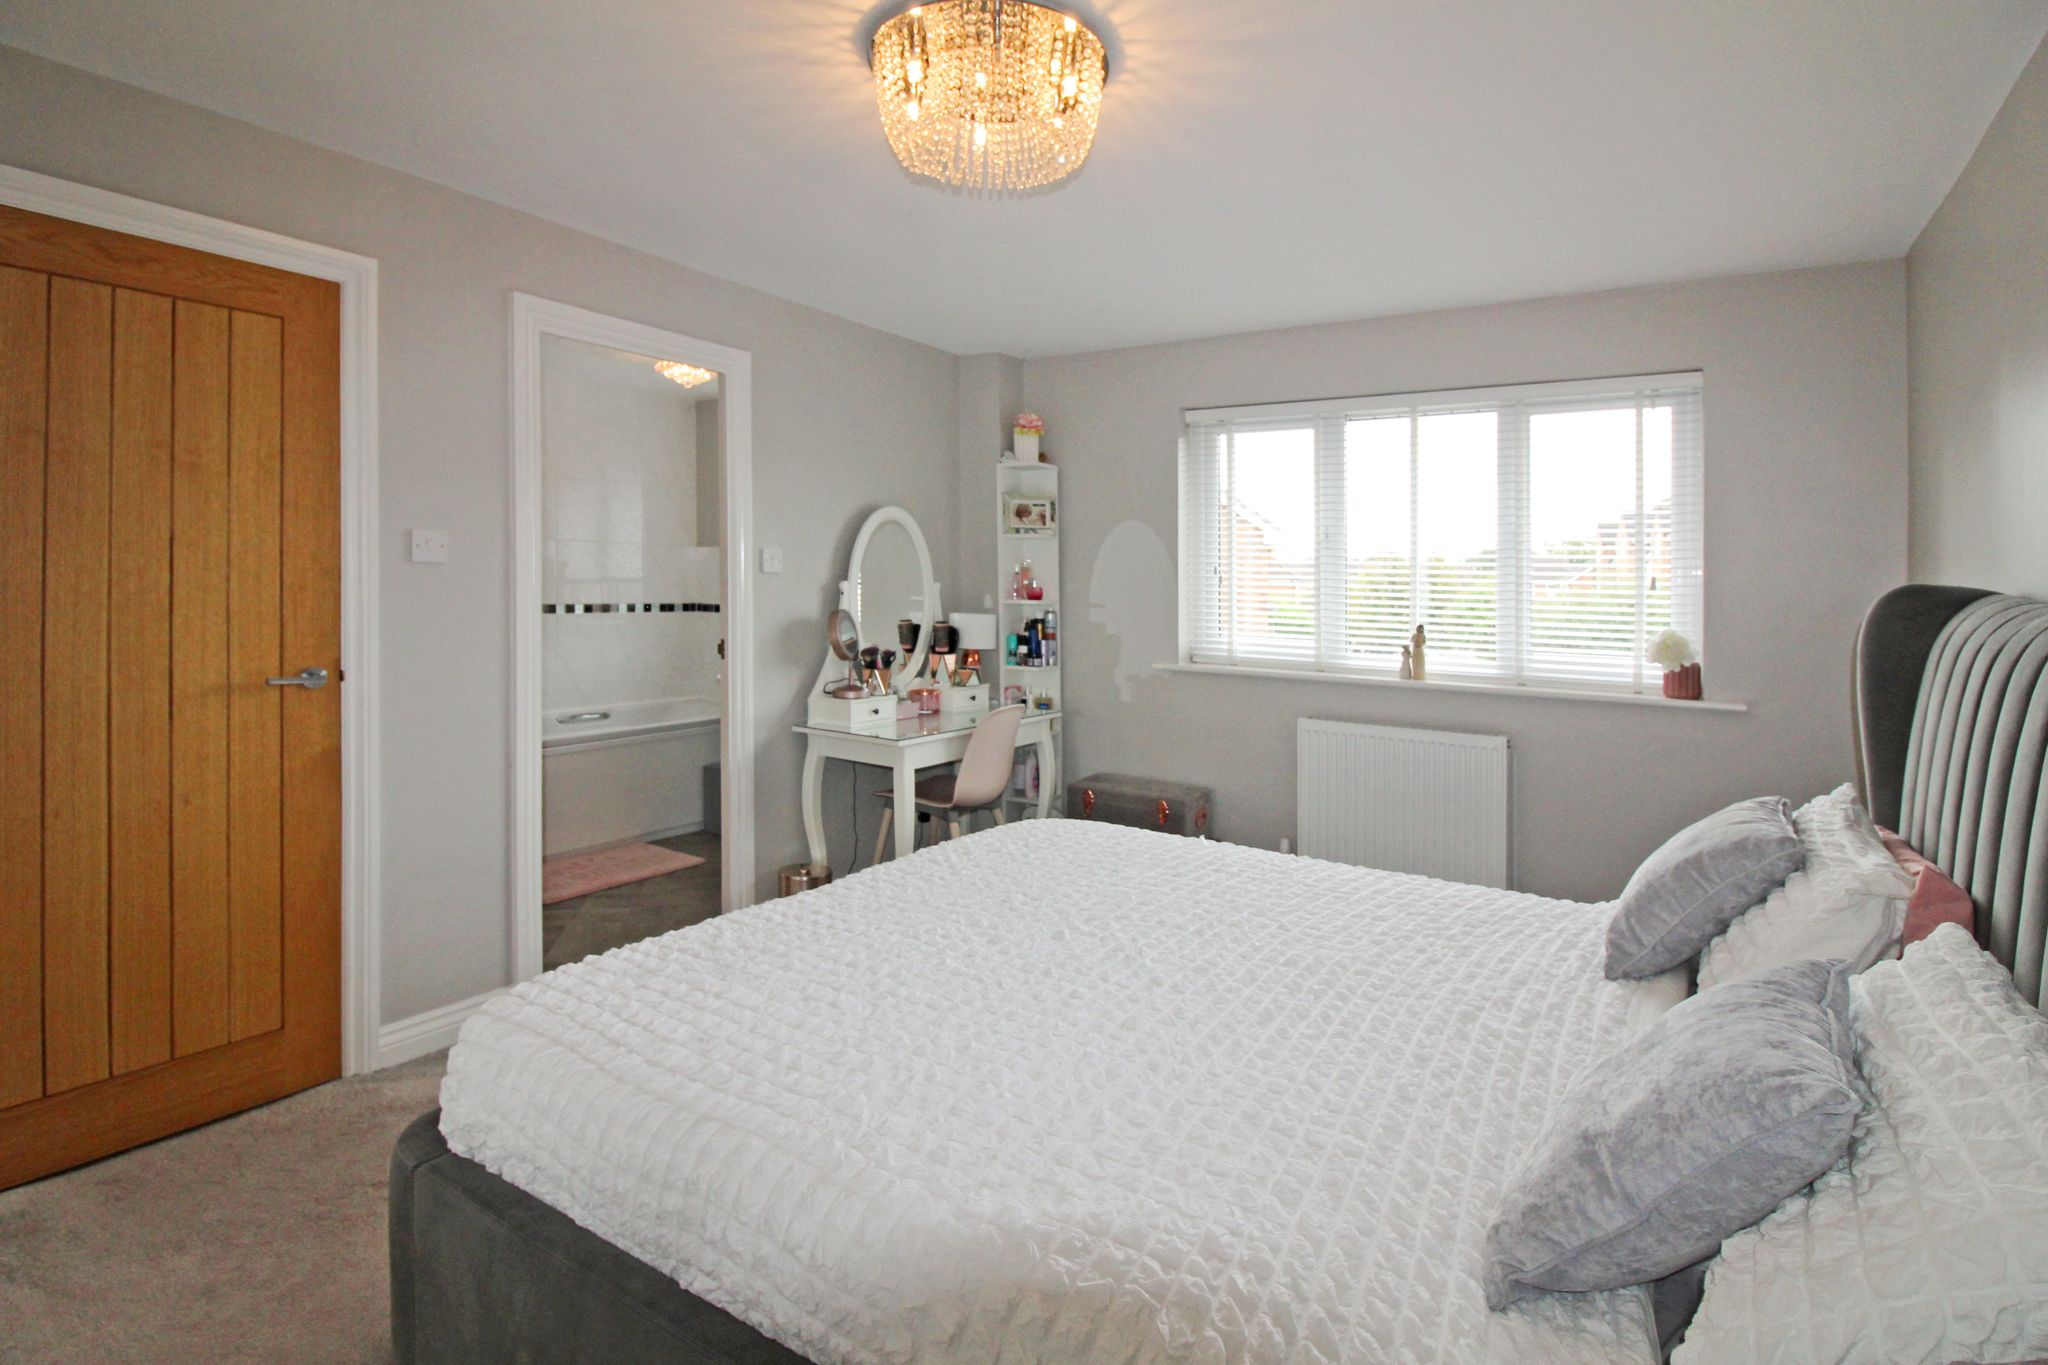 4 bedroom detached house For Sale in Solihull - Photograph 10.